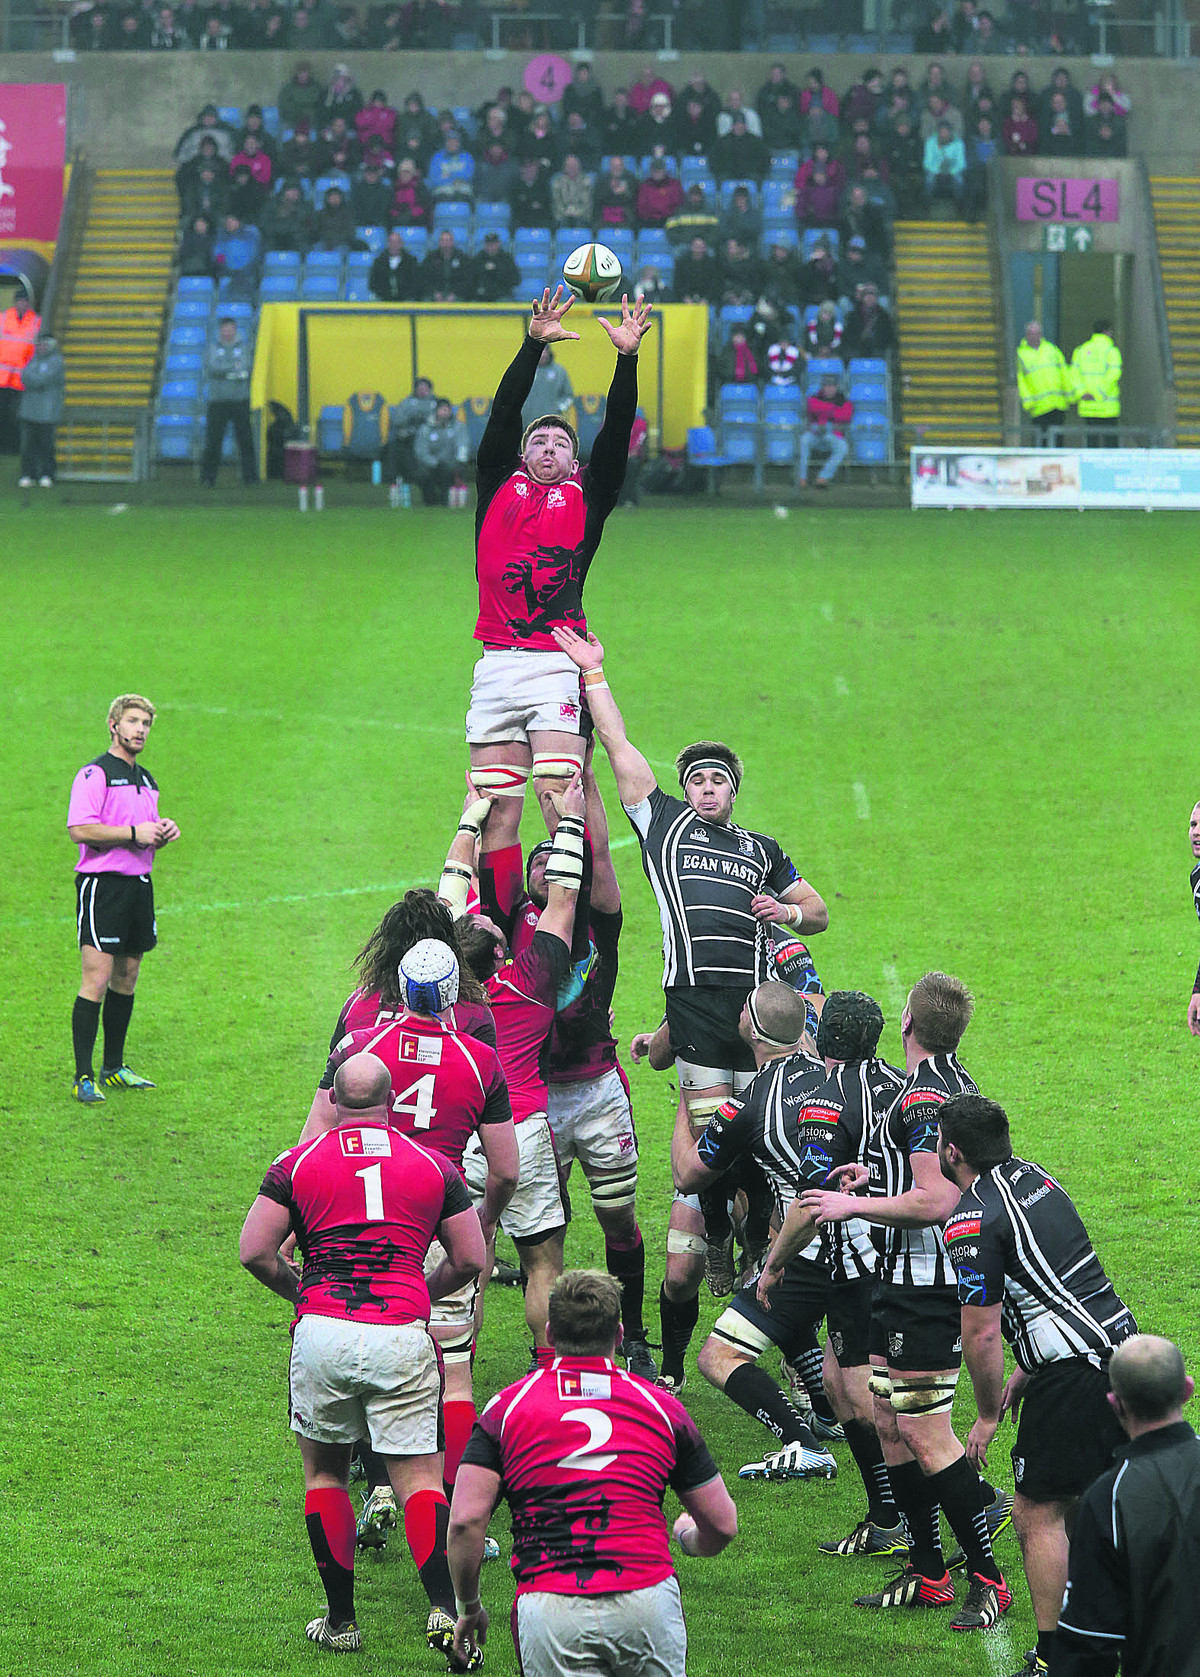 Ollie Stedman, pictured winning a line-out against Pontypridd last weekend, is one of only four London Welsh players to keep their place for today's match against London Scottish